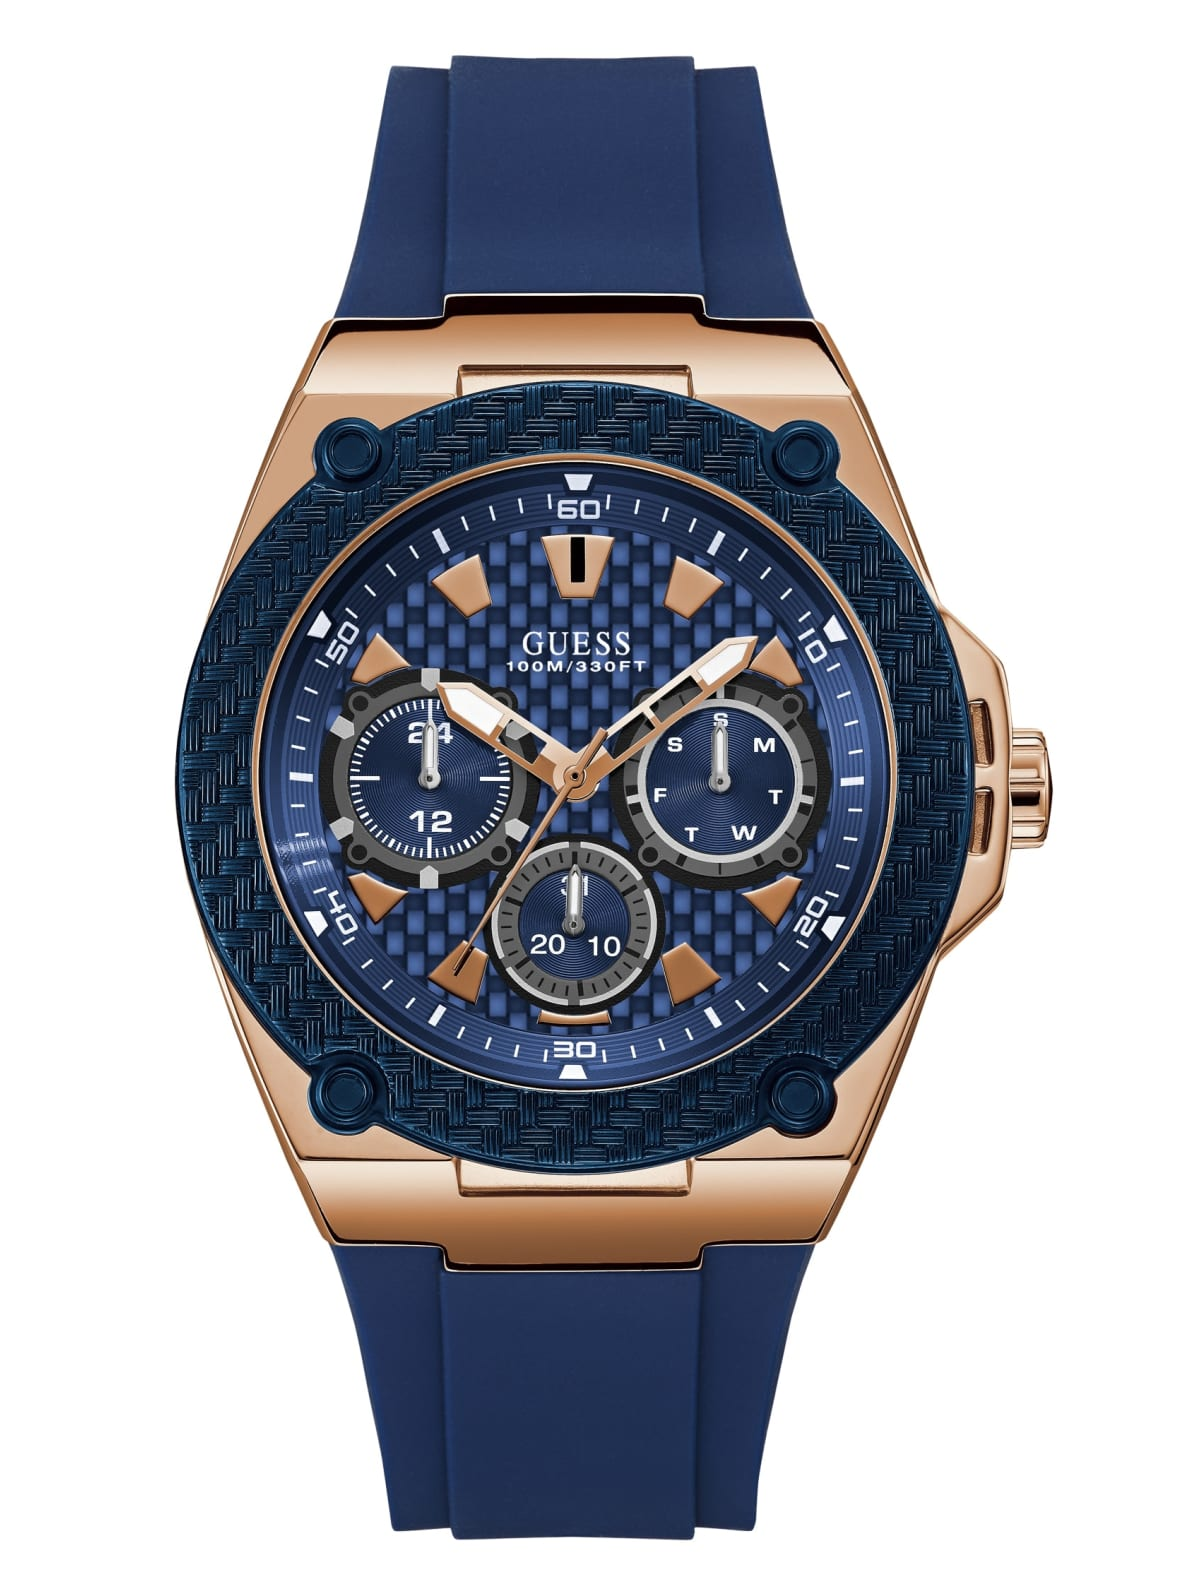 Guess Men's Stainless Steel Rose Gold Tone Case Blue Casual Silicone Watch U1049G2